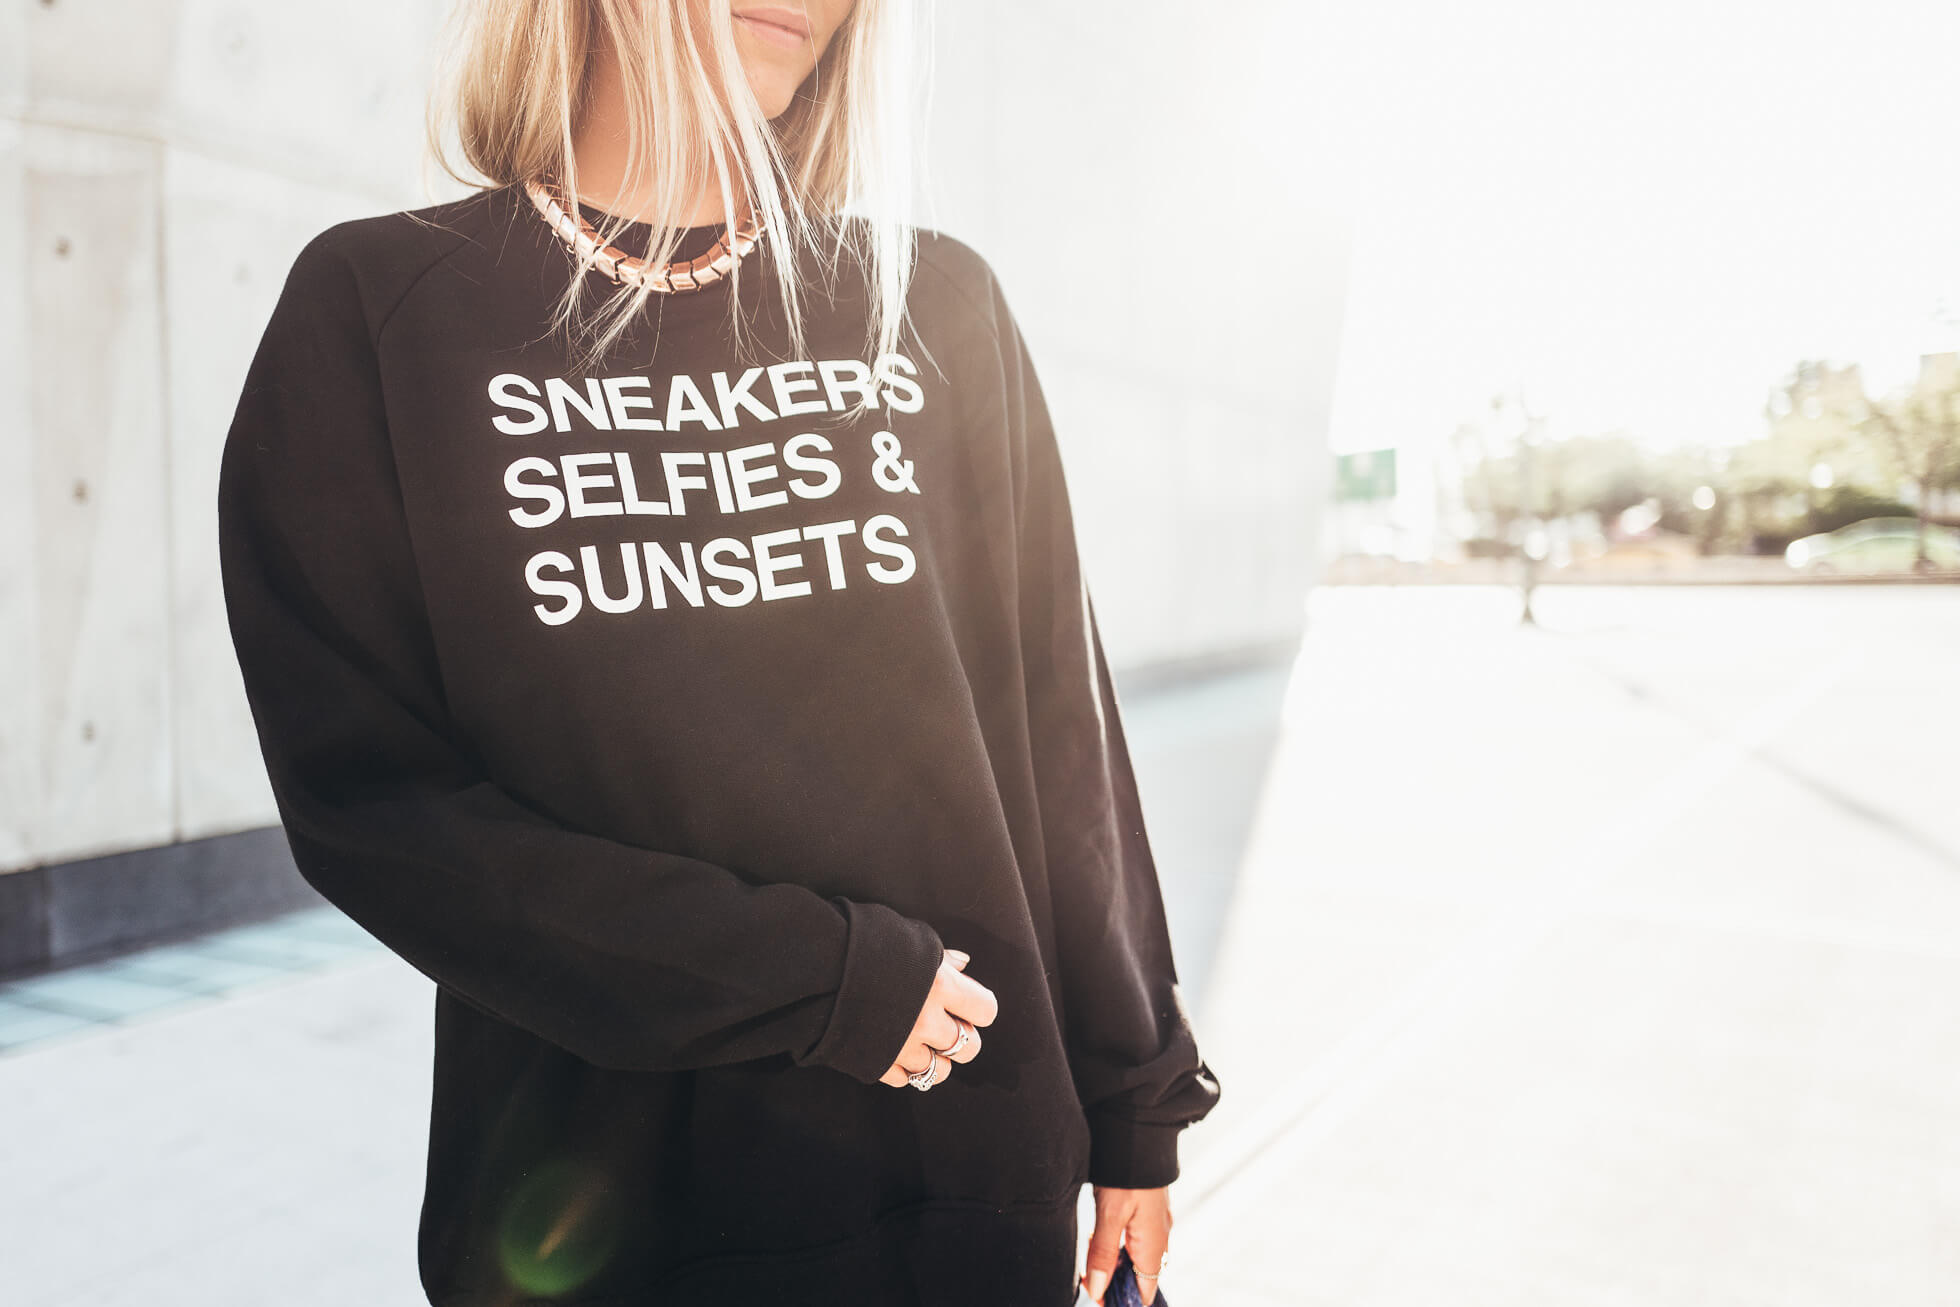 janni-deler-sneakers-selfies-sunsets-sweaterL1090938